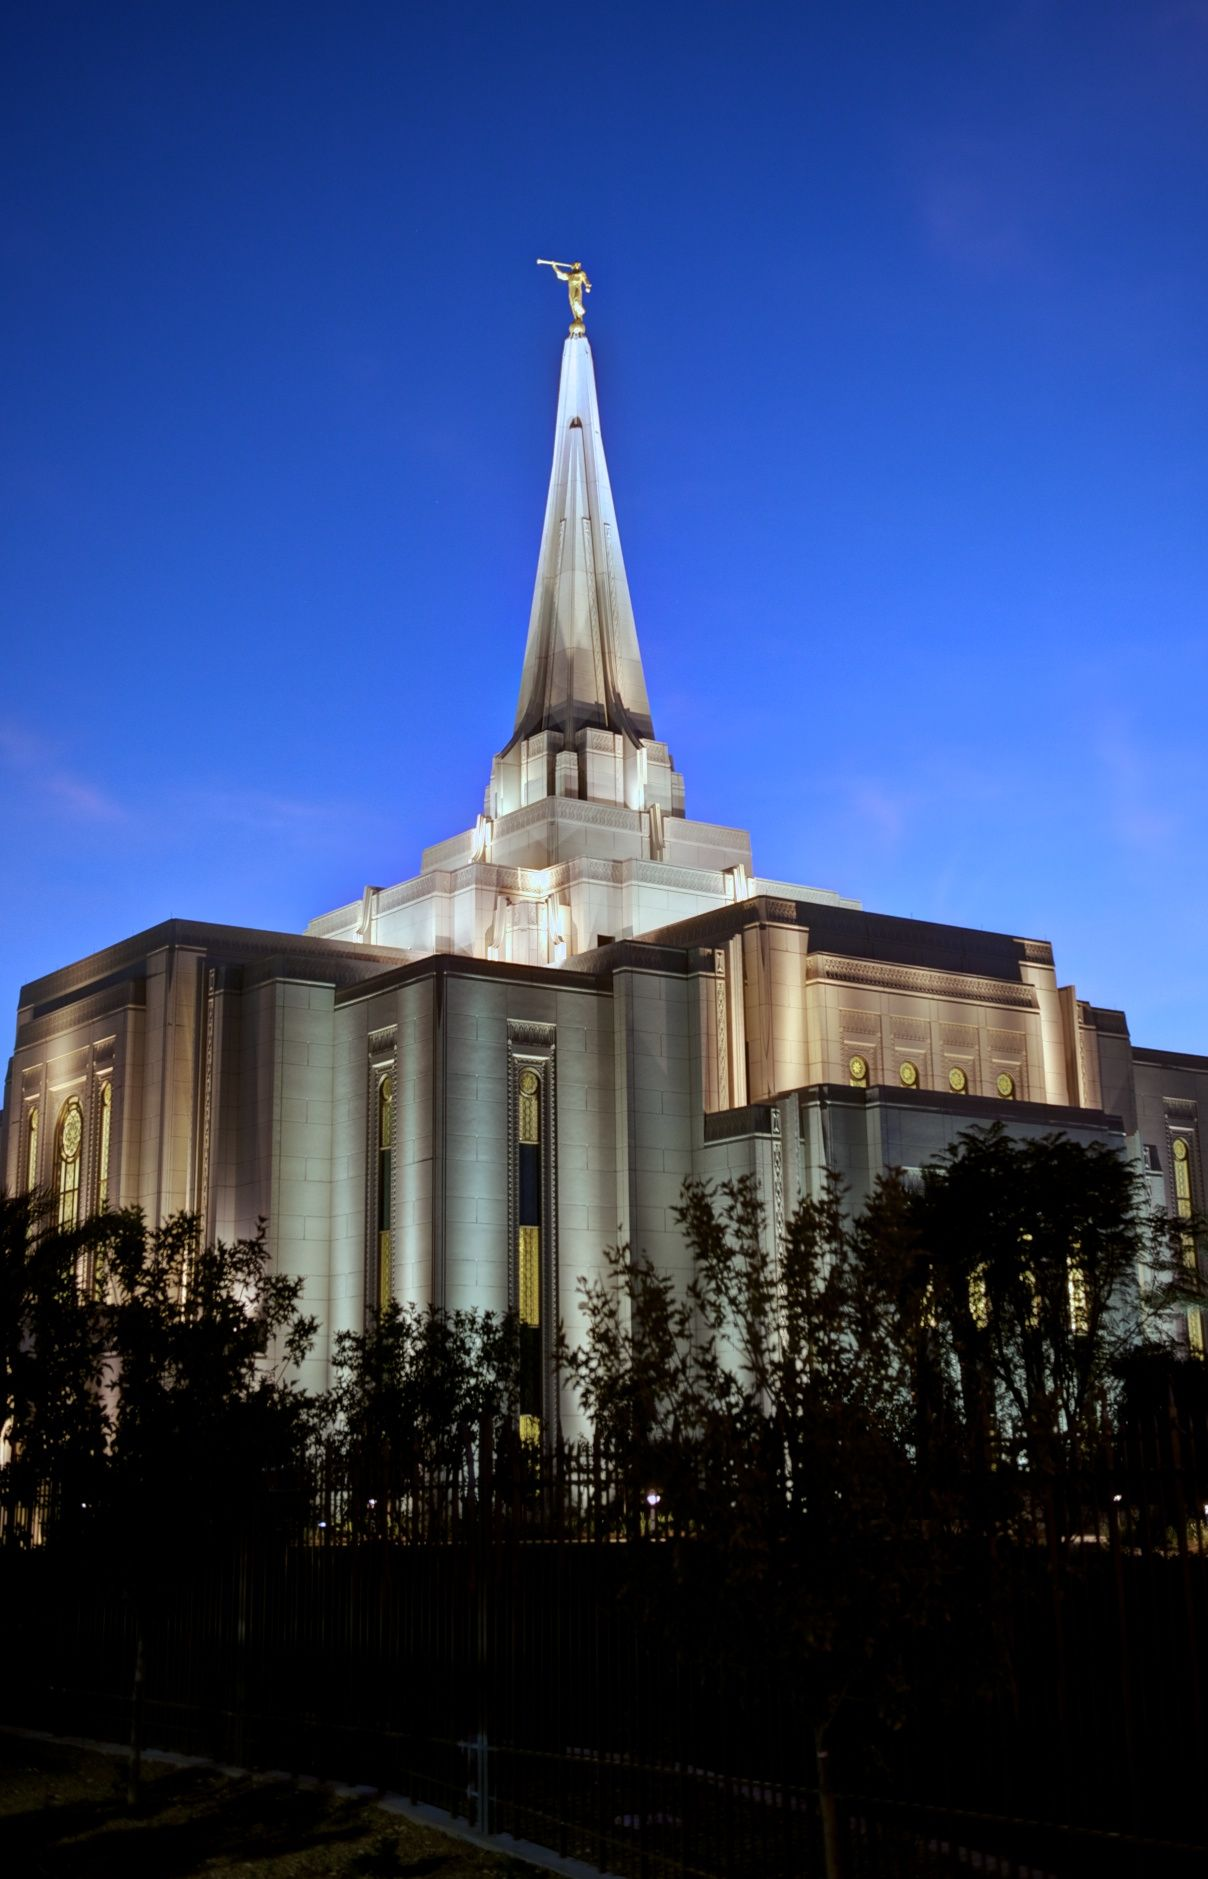 Photo taken on 11/14/13 of the Gilbert, Arizona LDS temple.  Like me at www.facebook.com/shanemorrisphotography